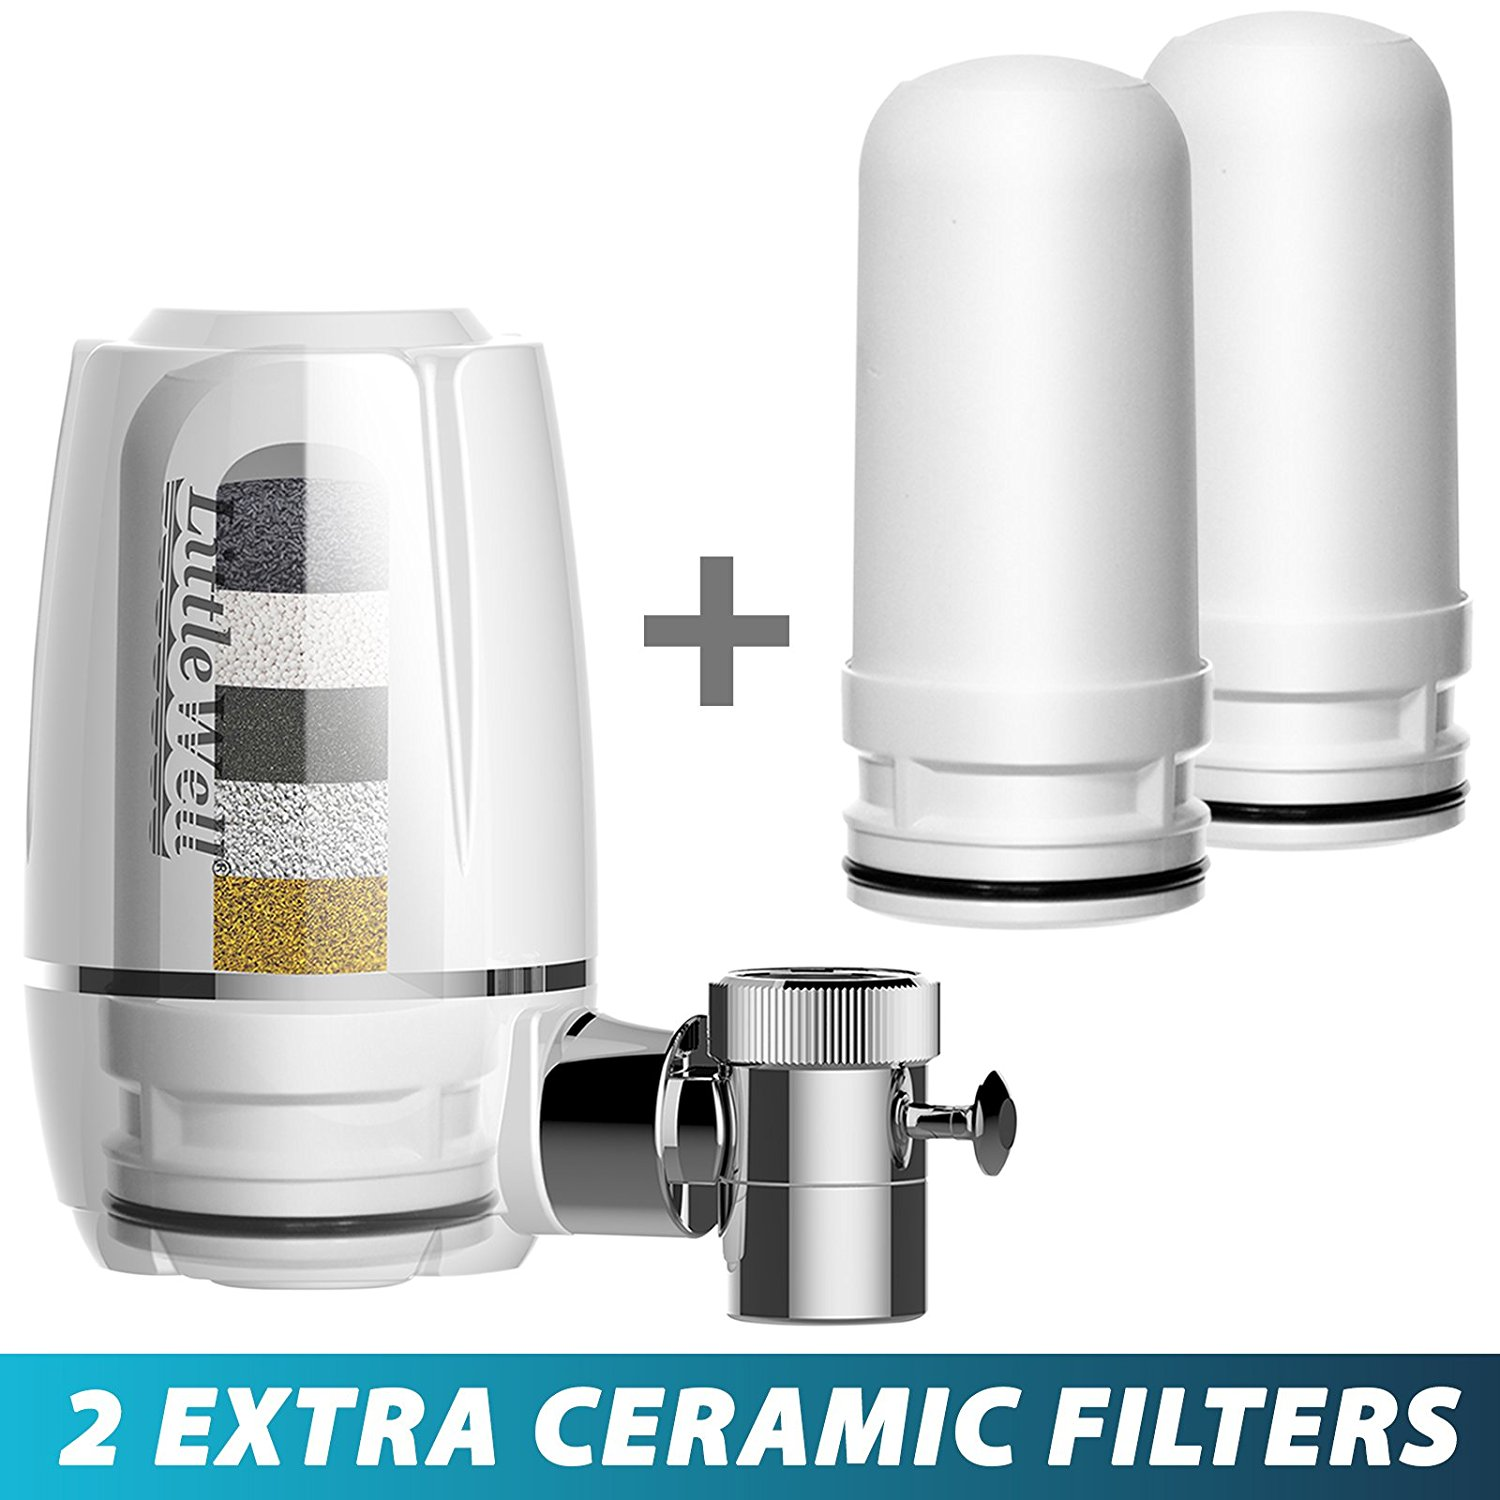 iSpring LittleWell Faucet Water Filter with Multi-Layer Filtration Media + 2 Ceramic Filters, #DFW1+DF-CERAMICX2